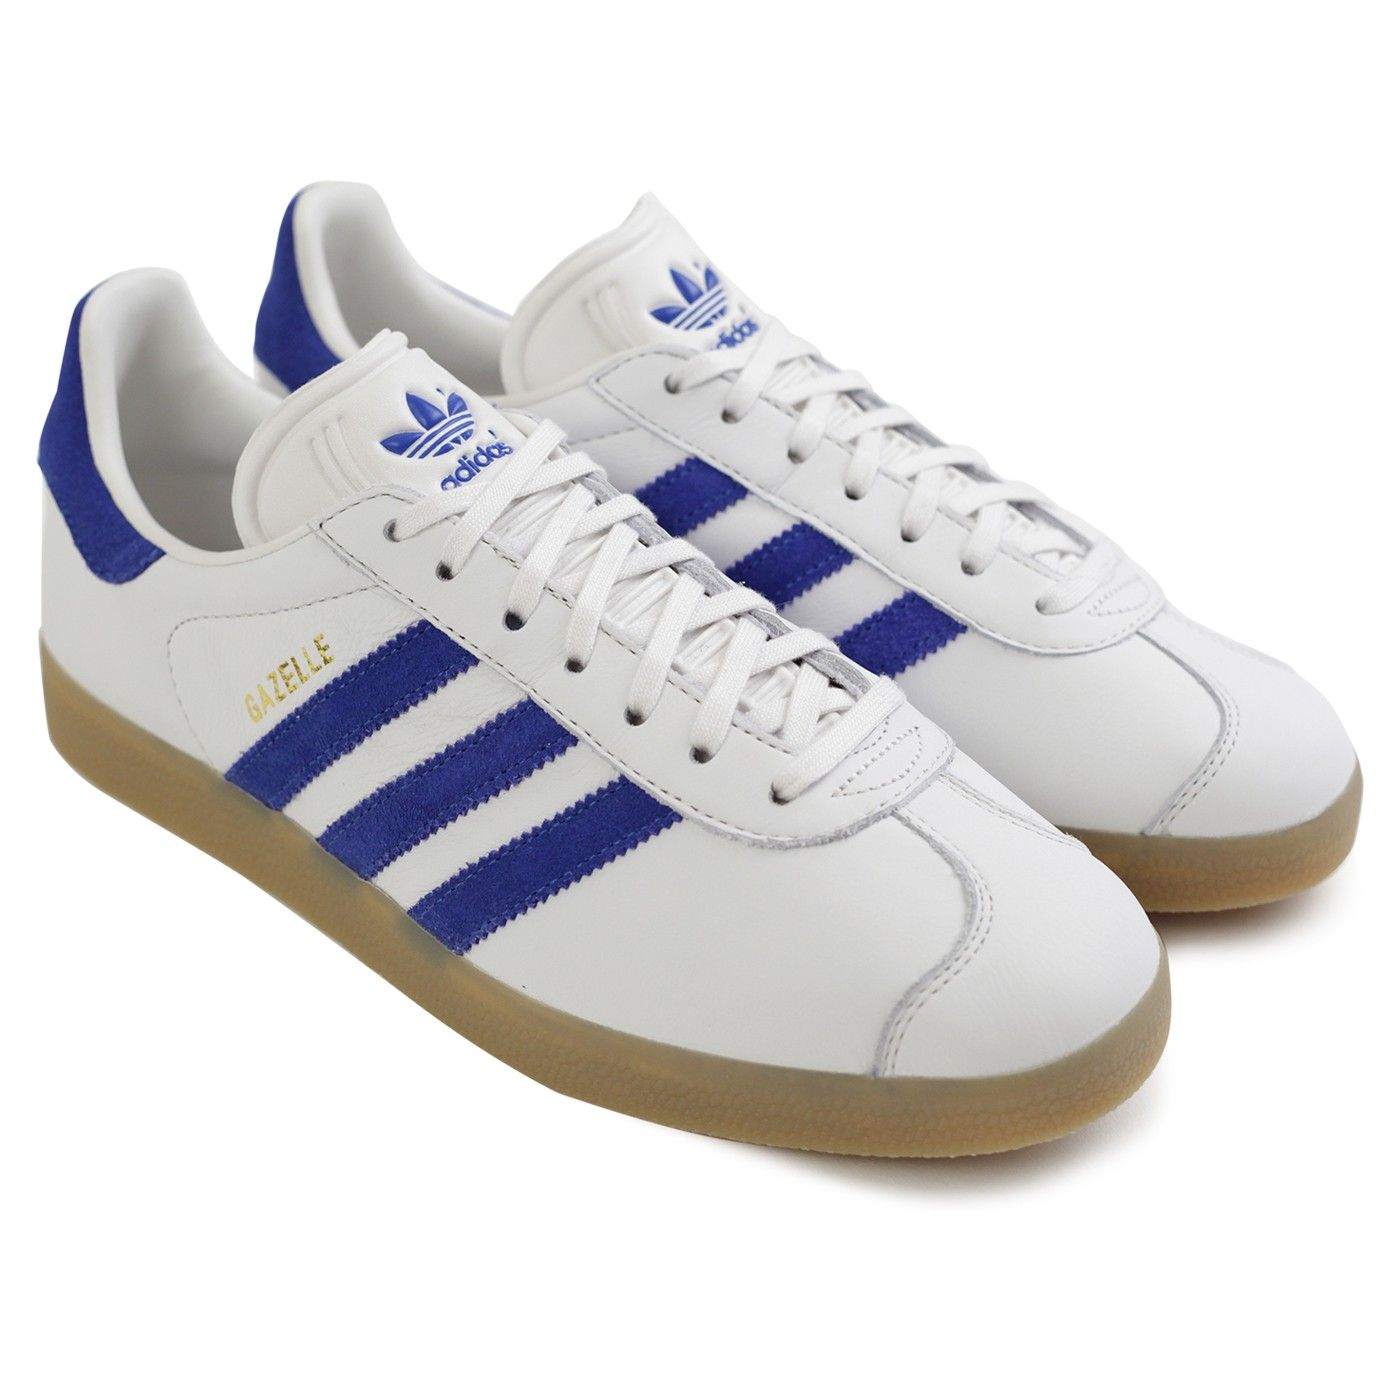 half off 4030d f5545 Gazelle Shoes in Vintage White   Bold Blue   Gum by Adidas Originals